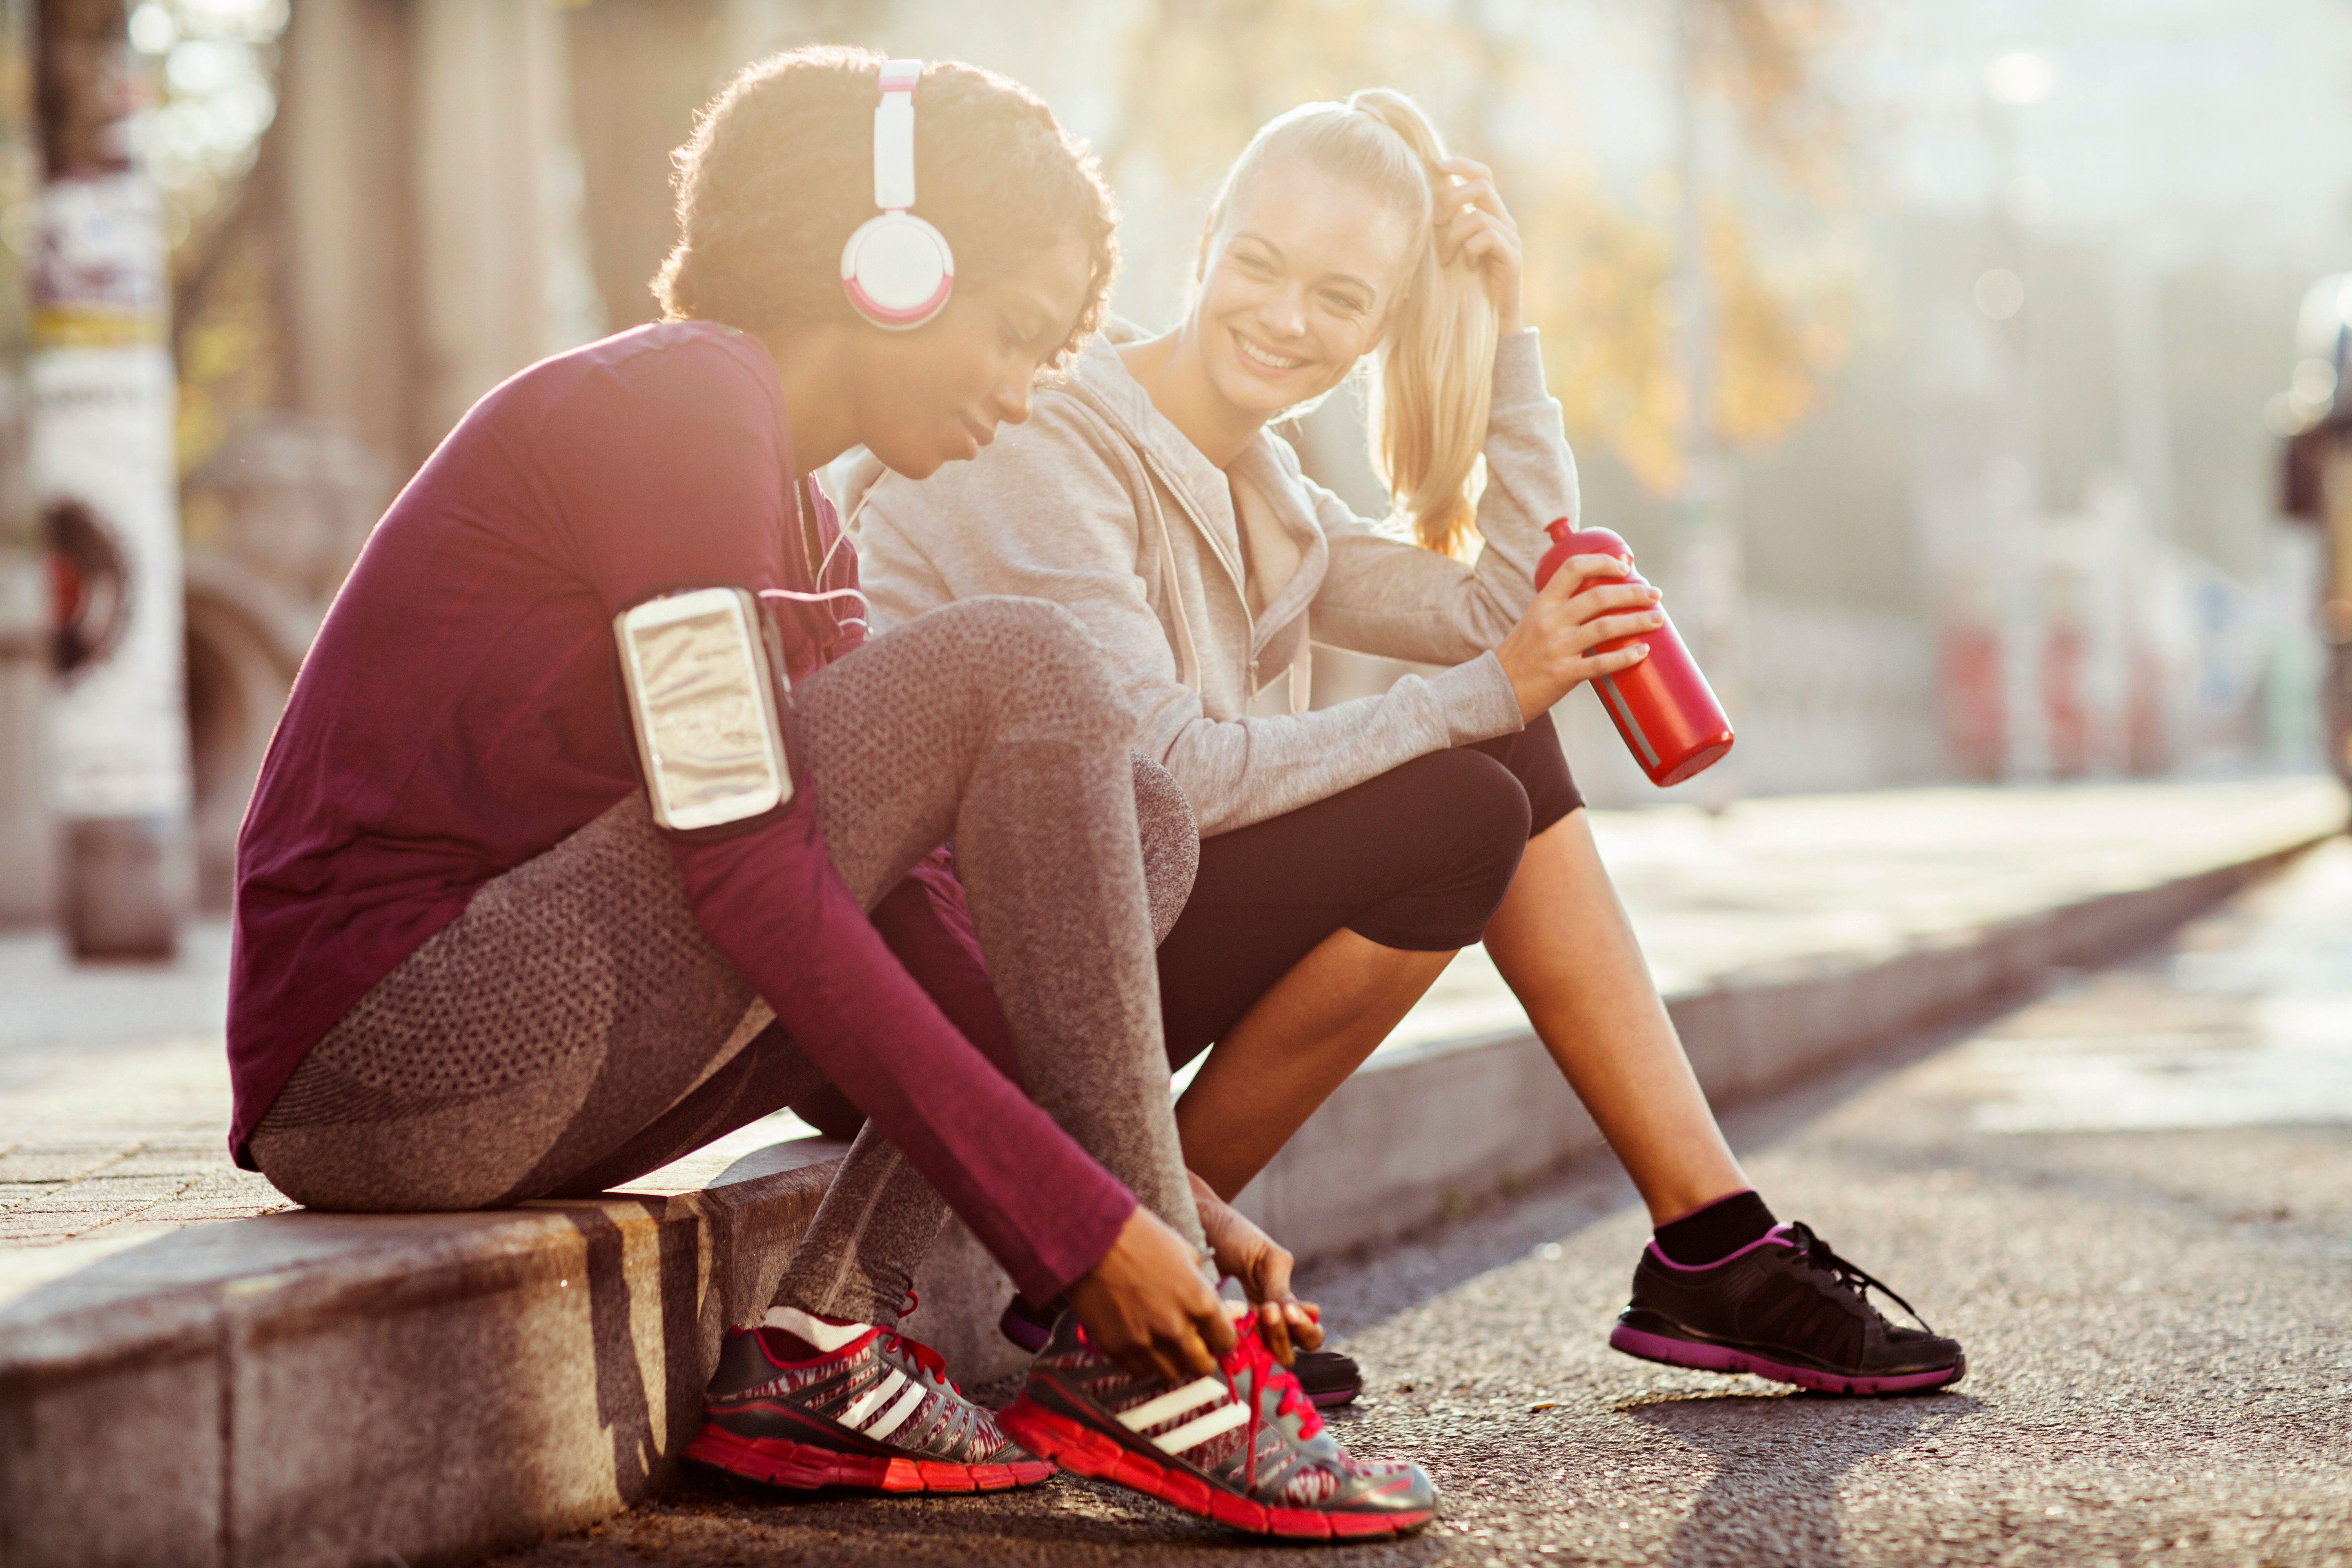 'How To Get Fit Fast': 7 Lessons Learned From Channel 4's Exercise-Filled